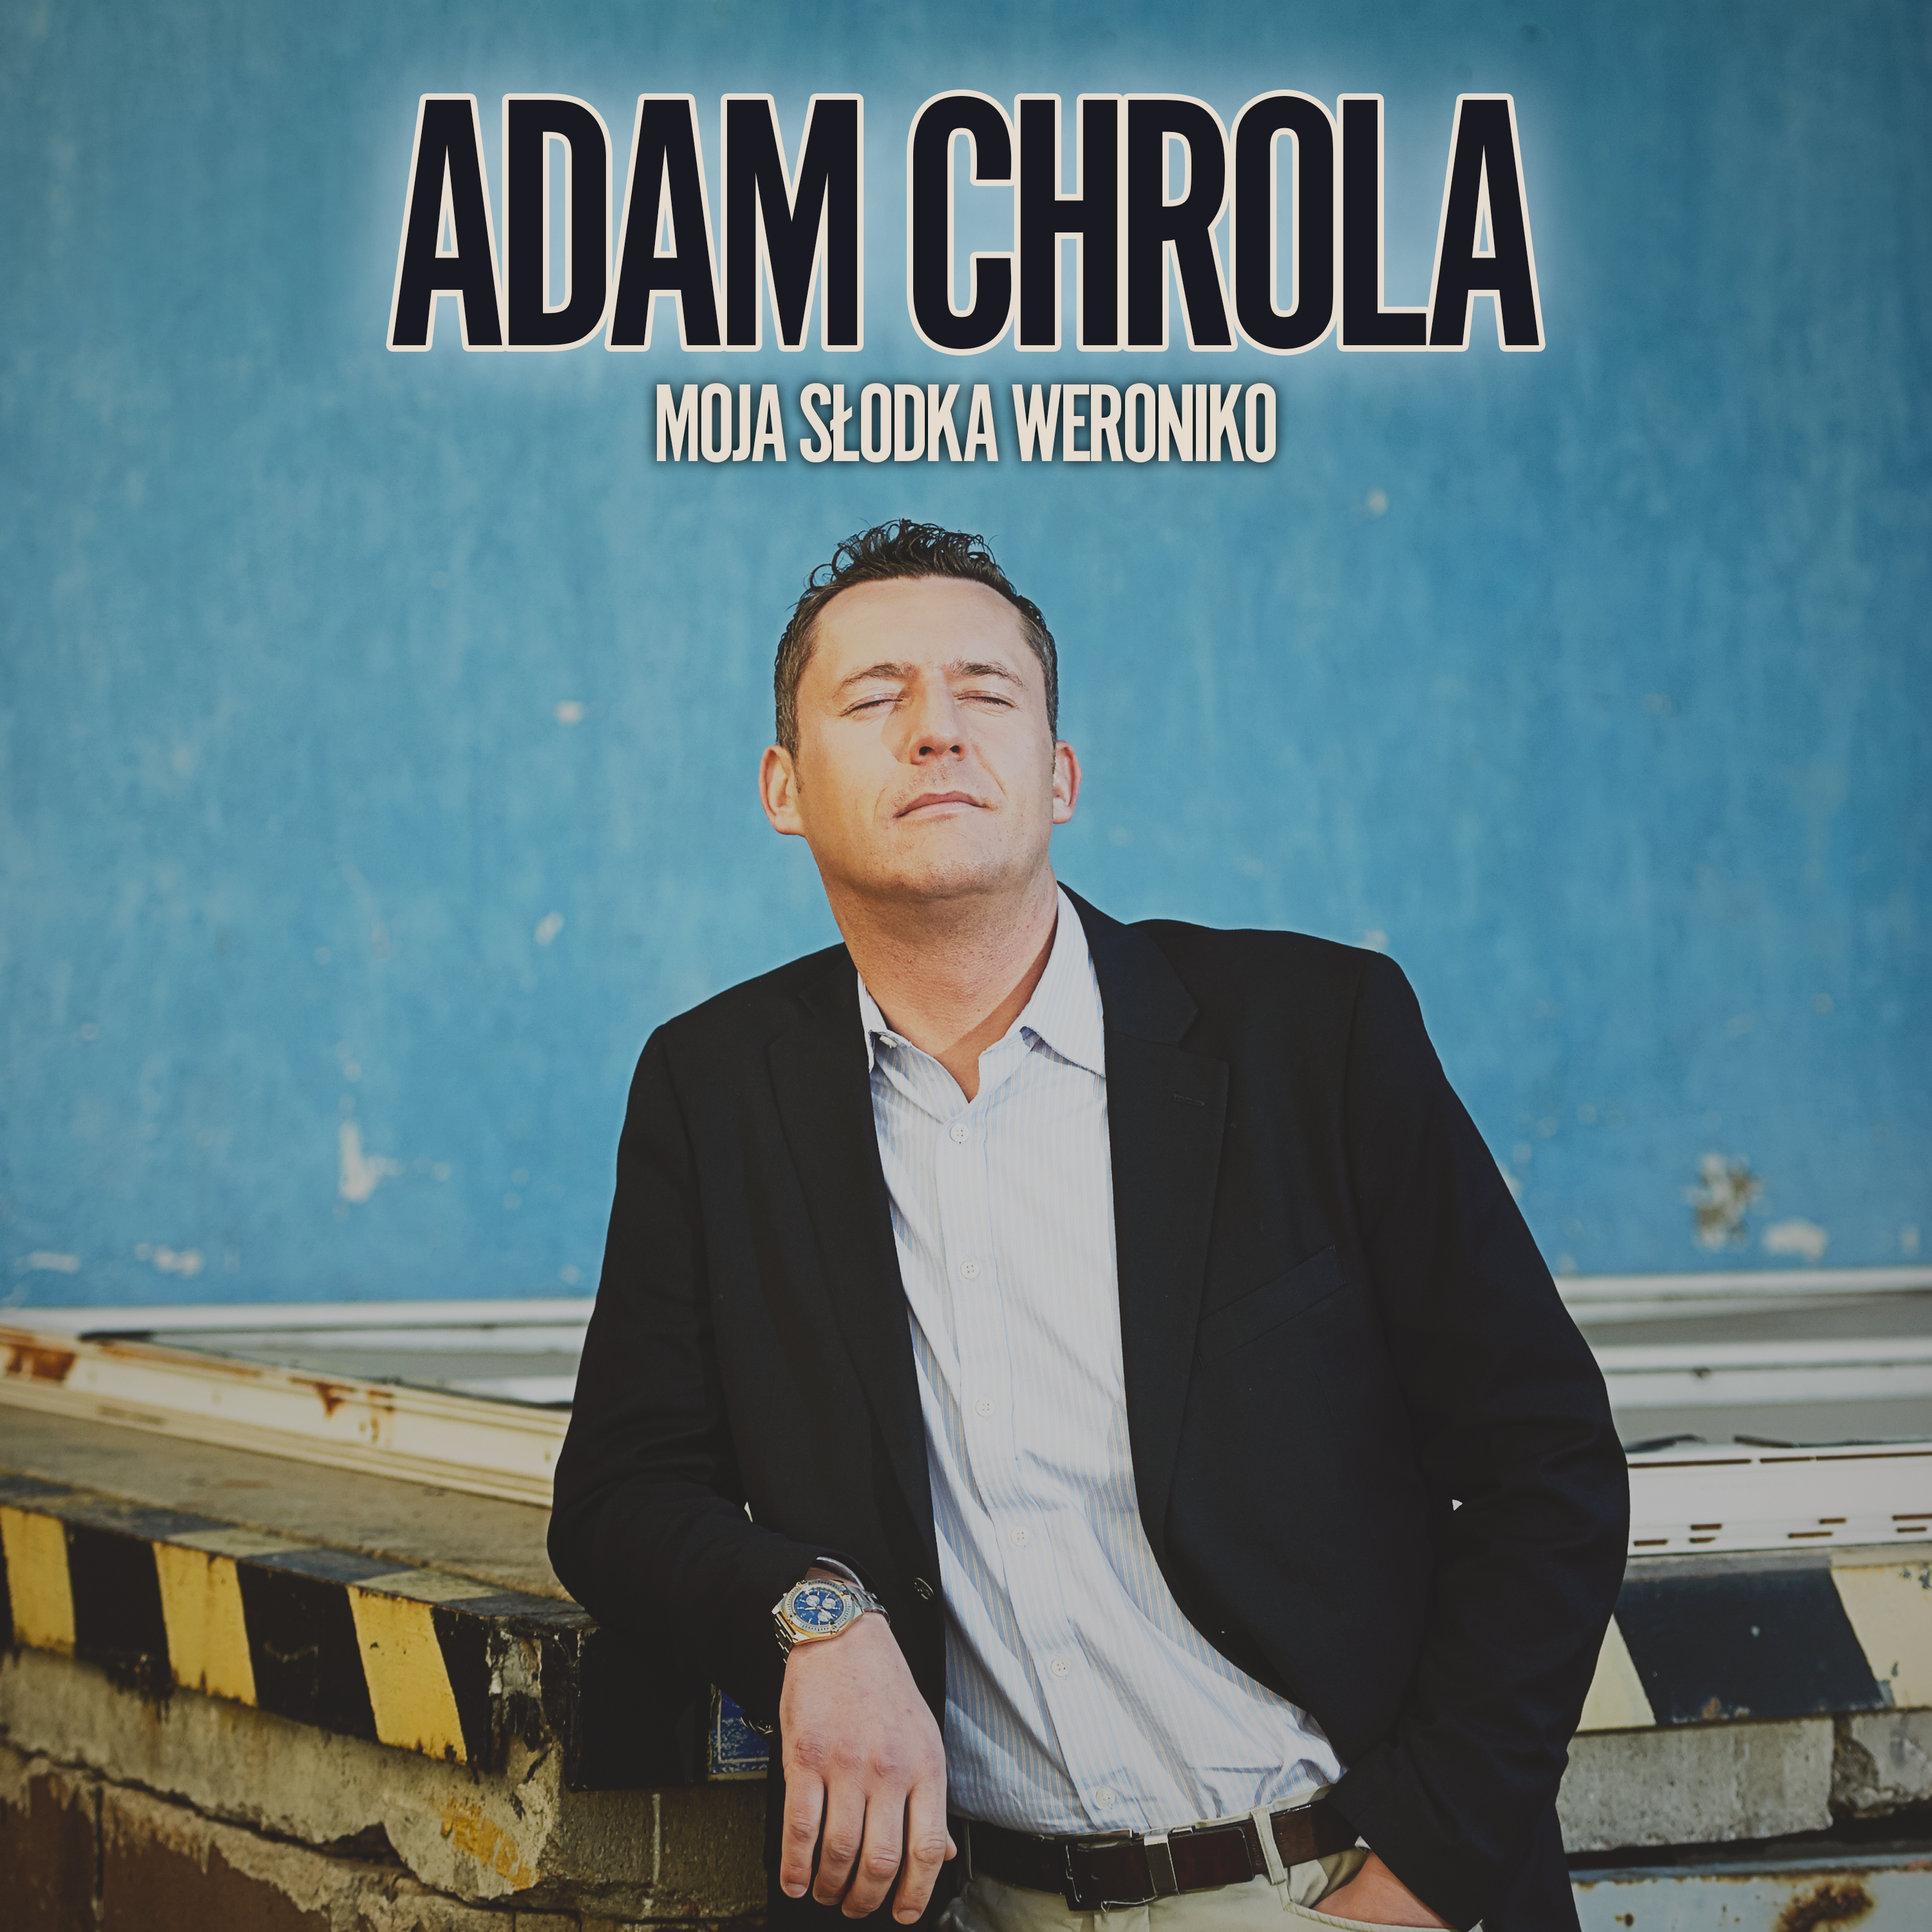 Adam Chrola - Moja Słodka Weroniko